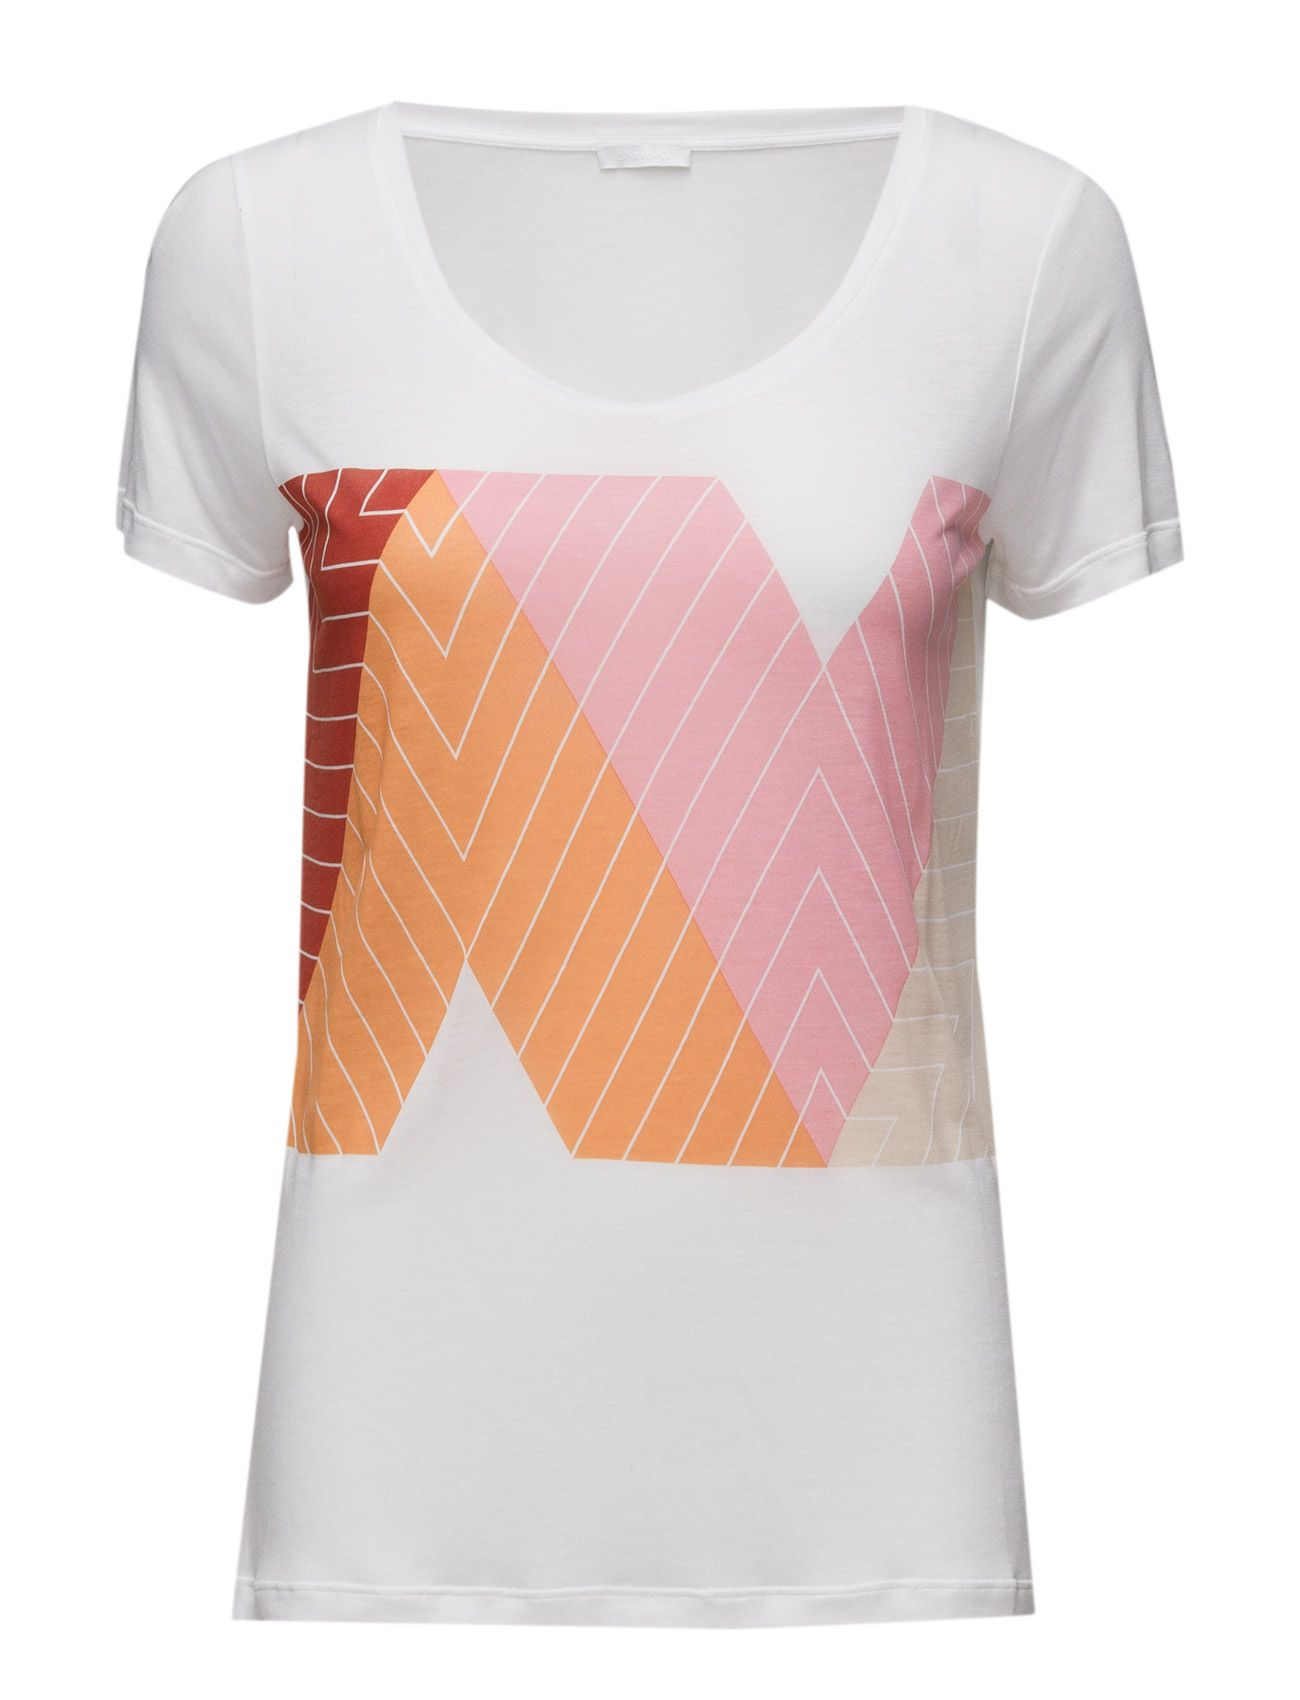 Day nd cay printed design on front scoop neckline short sleeves